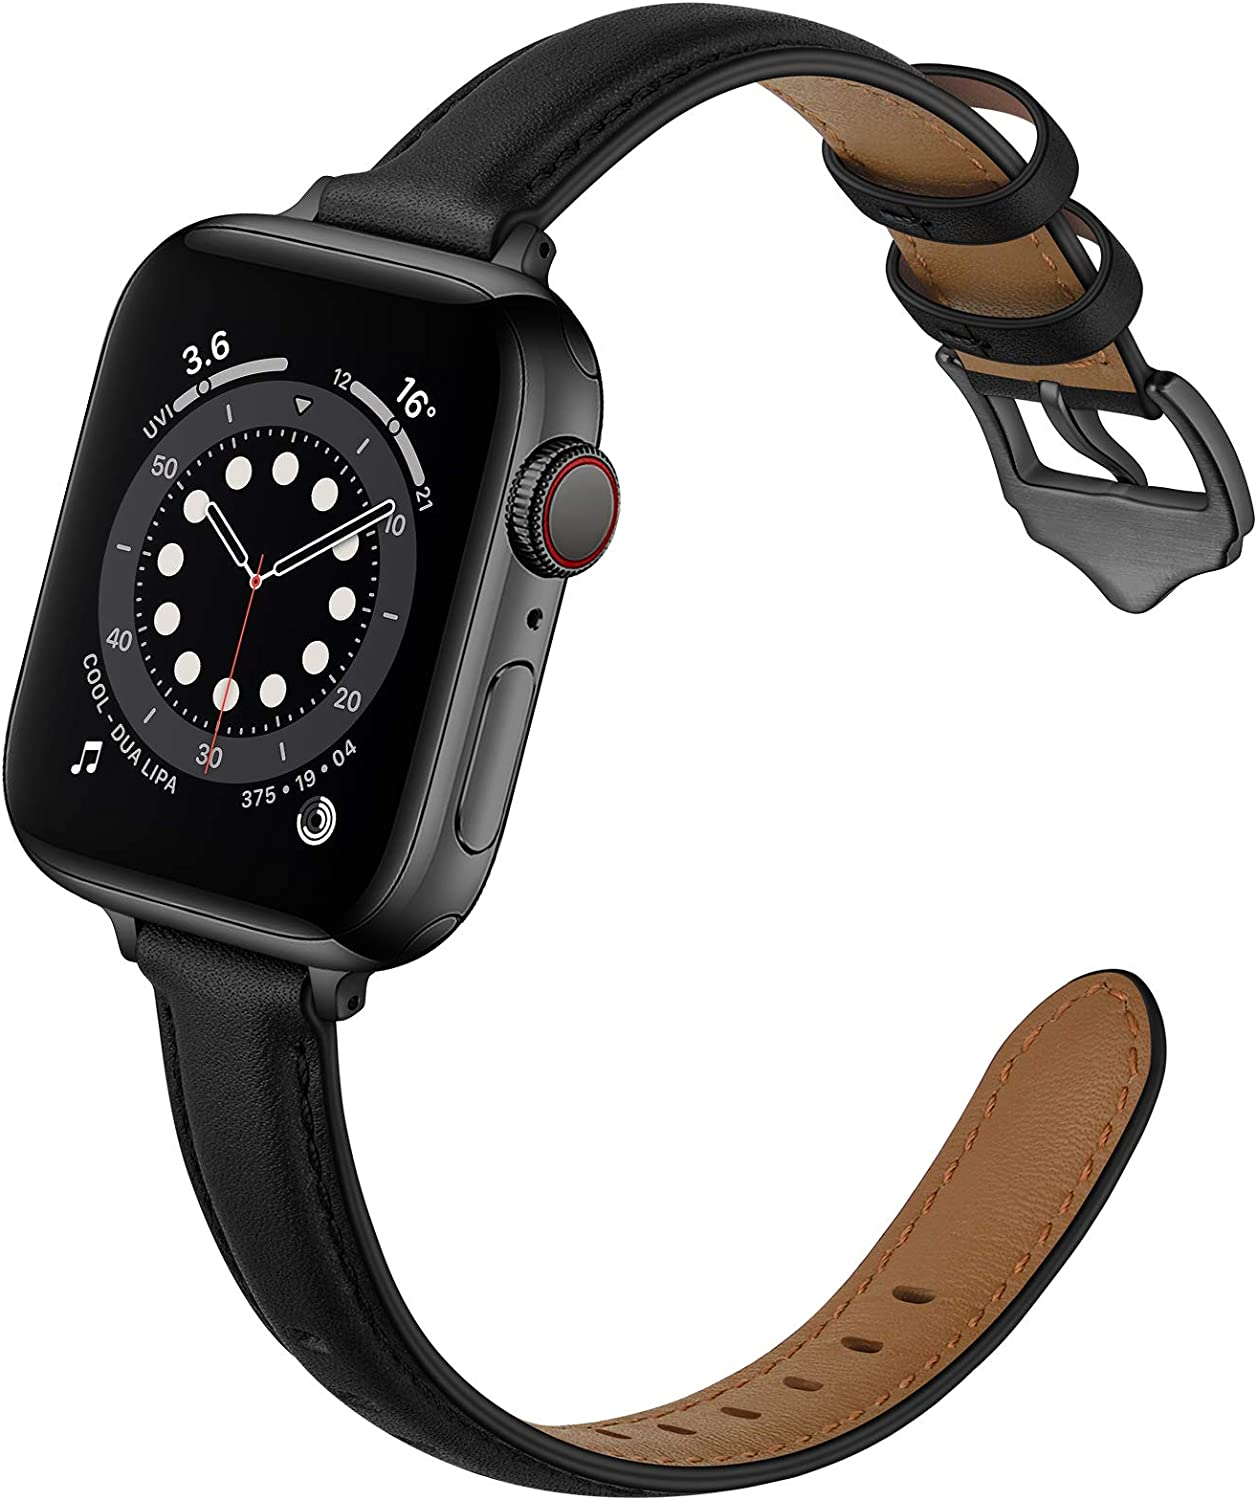 OUHENG Compatible with Apple Watch Bands 40mm 38mm 44mm 42mm, Women Slim Thin Genuine Leather Replacement Strap for iWatch SE Series 6 5 4 3 2 1 (Black/Black, 40mm 38mm)